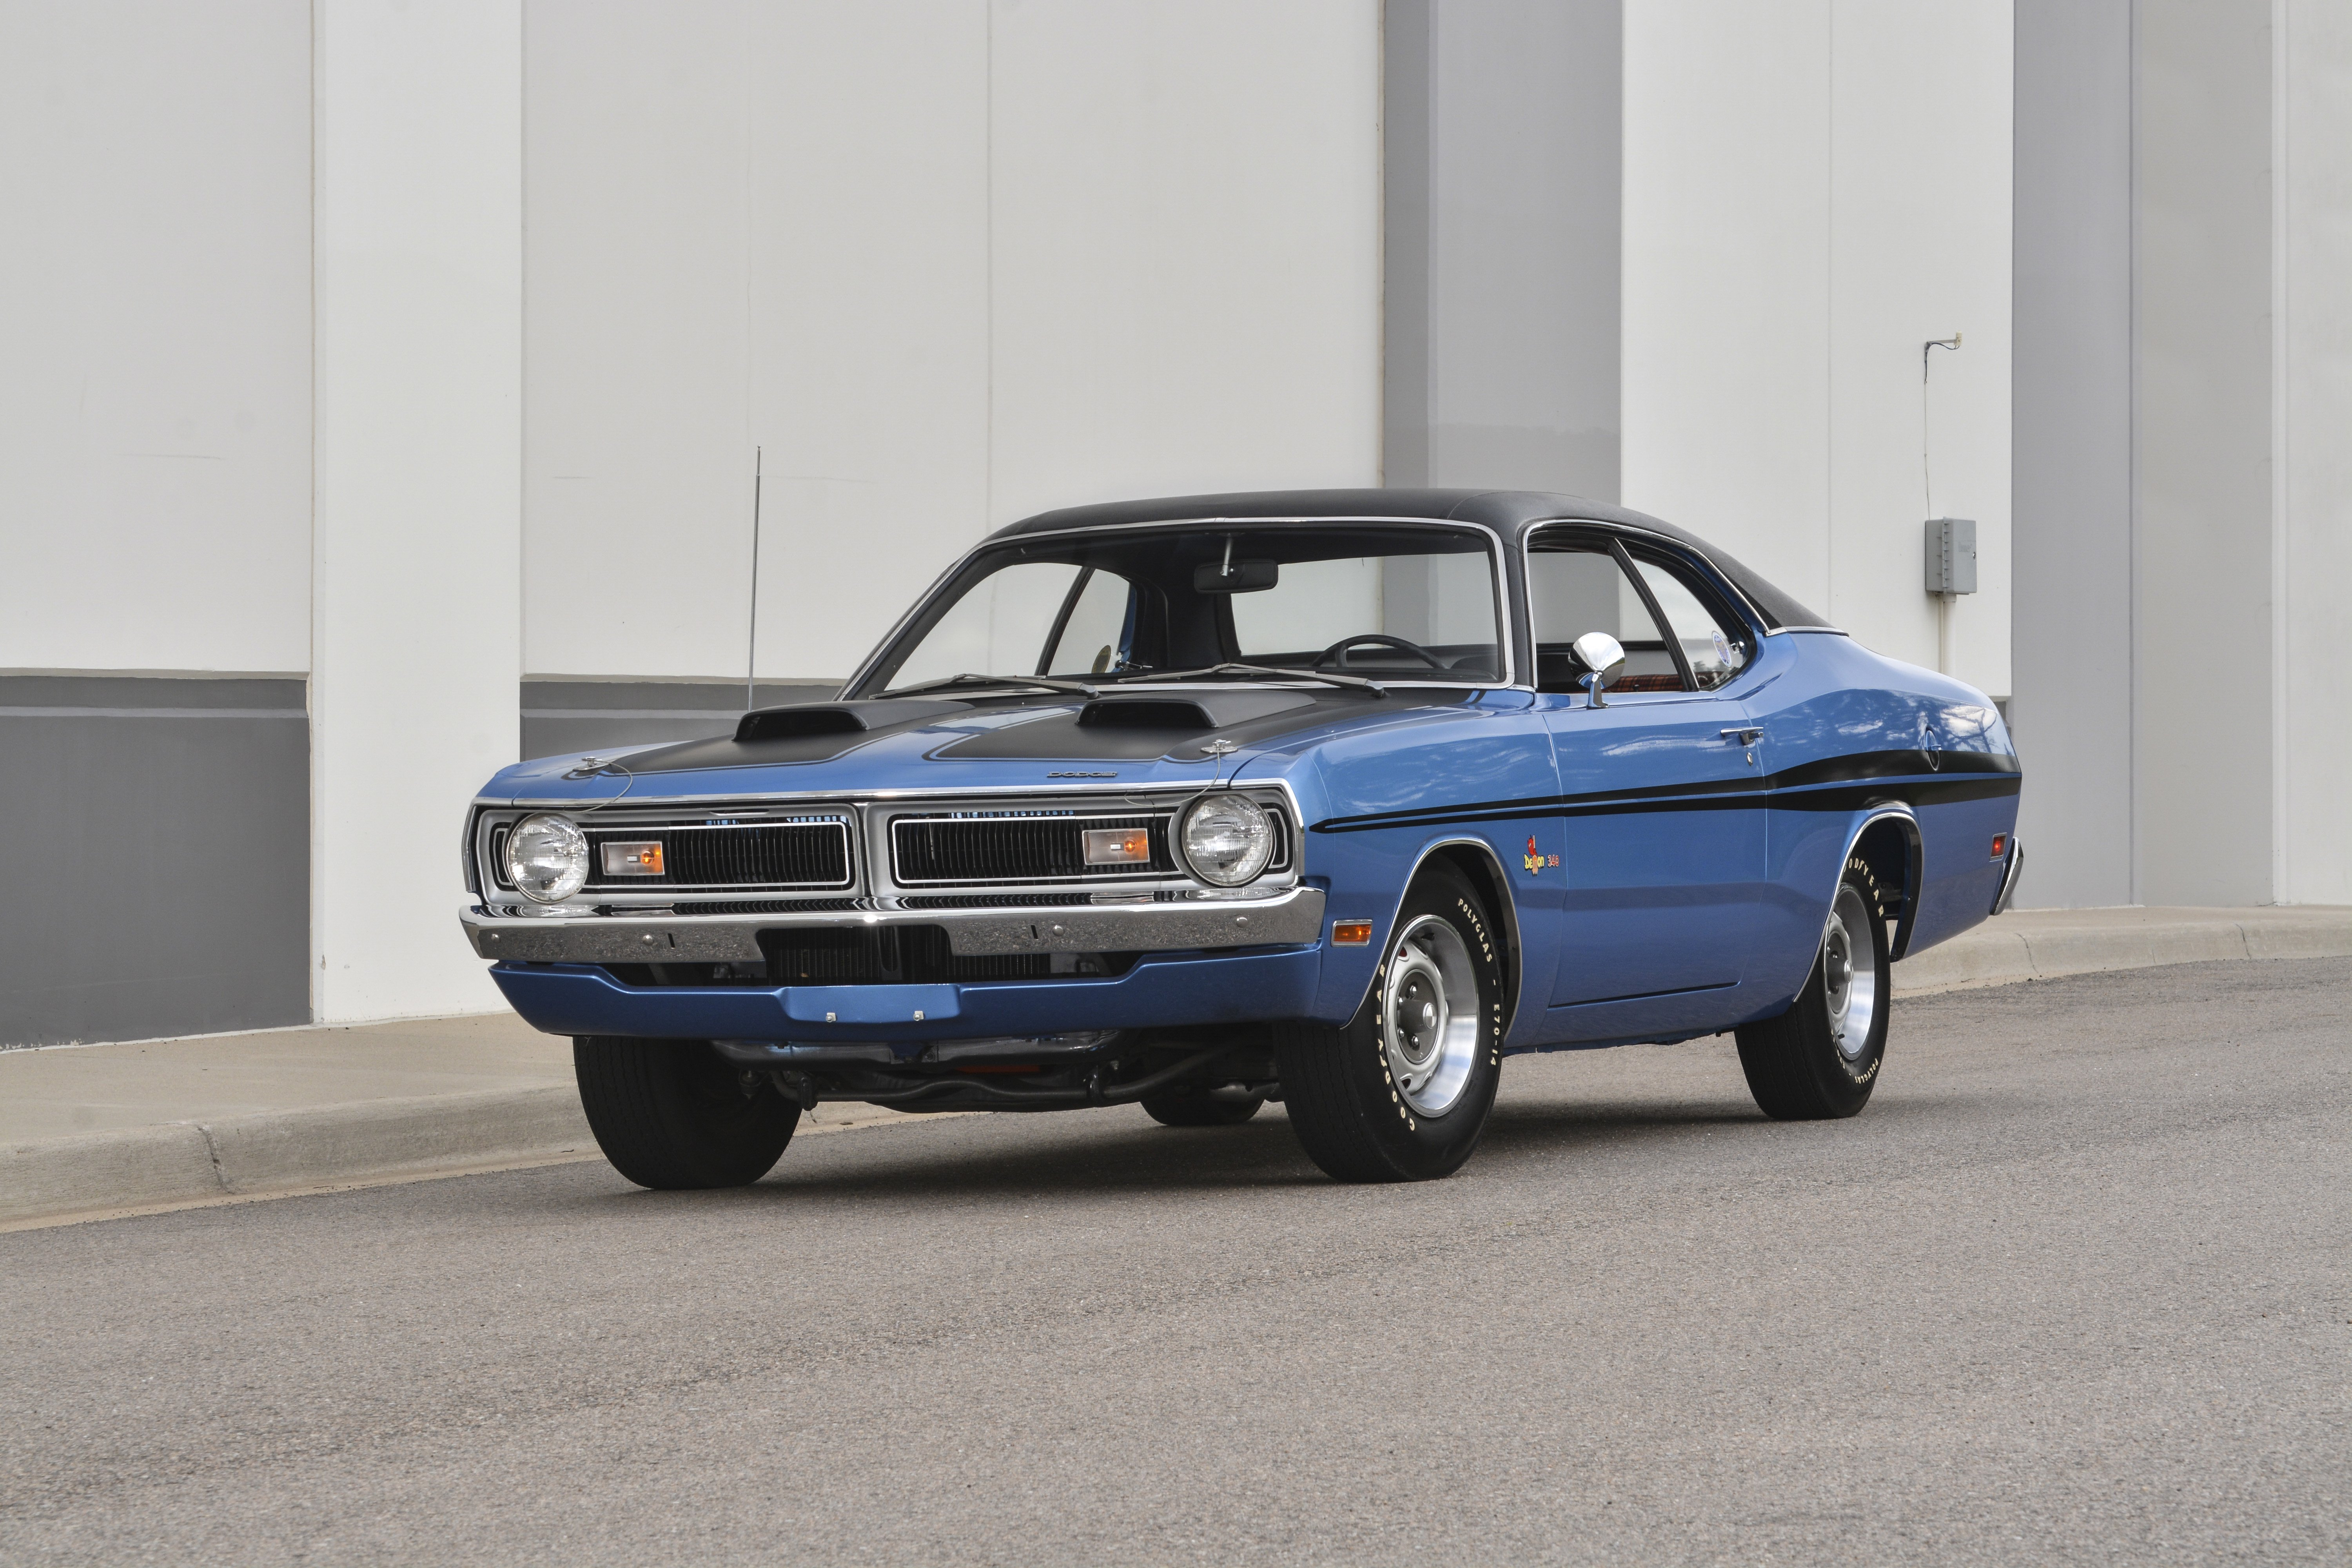 1971 dodge demon gss muscle classic old original usa 01. Black Bedroom Furniture Sets. Home Design Ideas